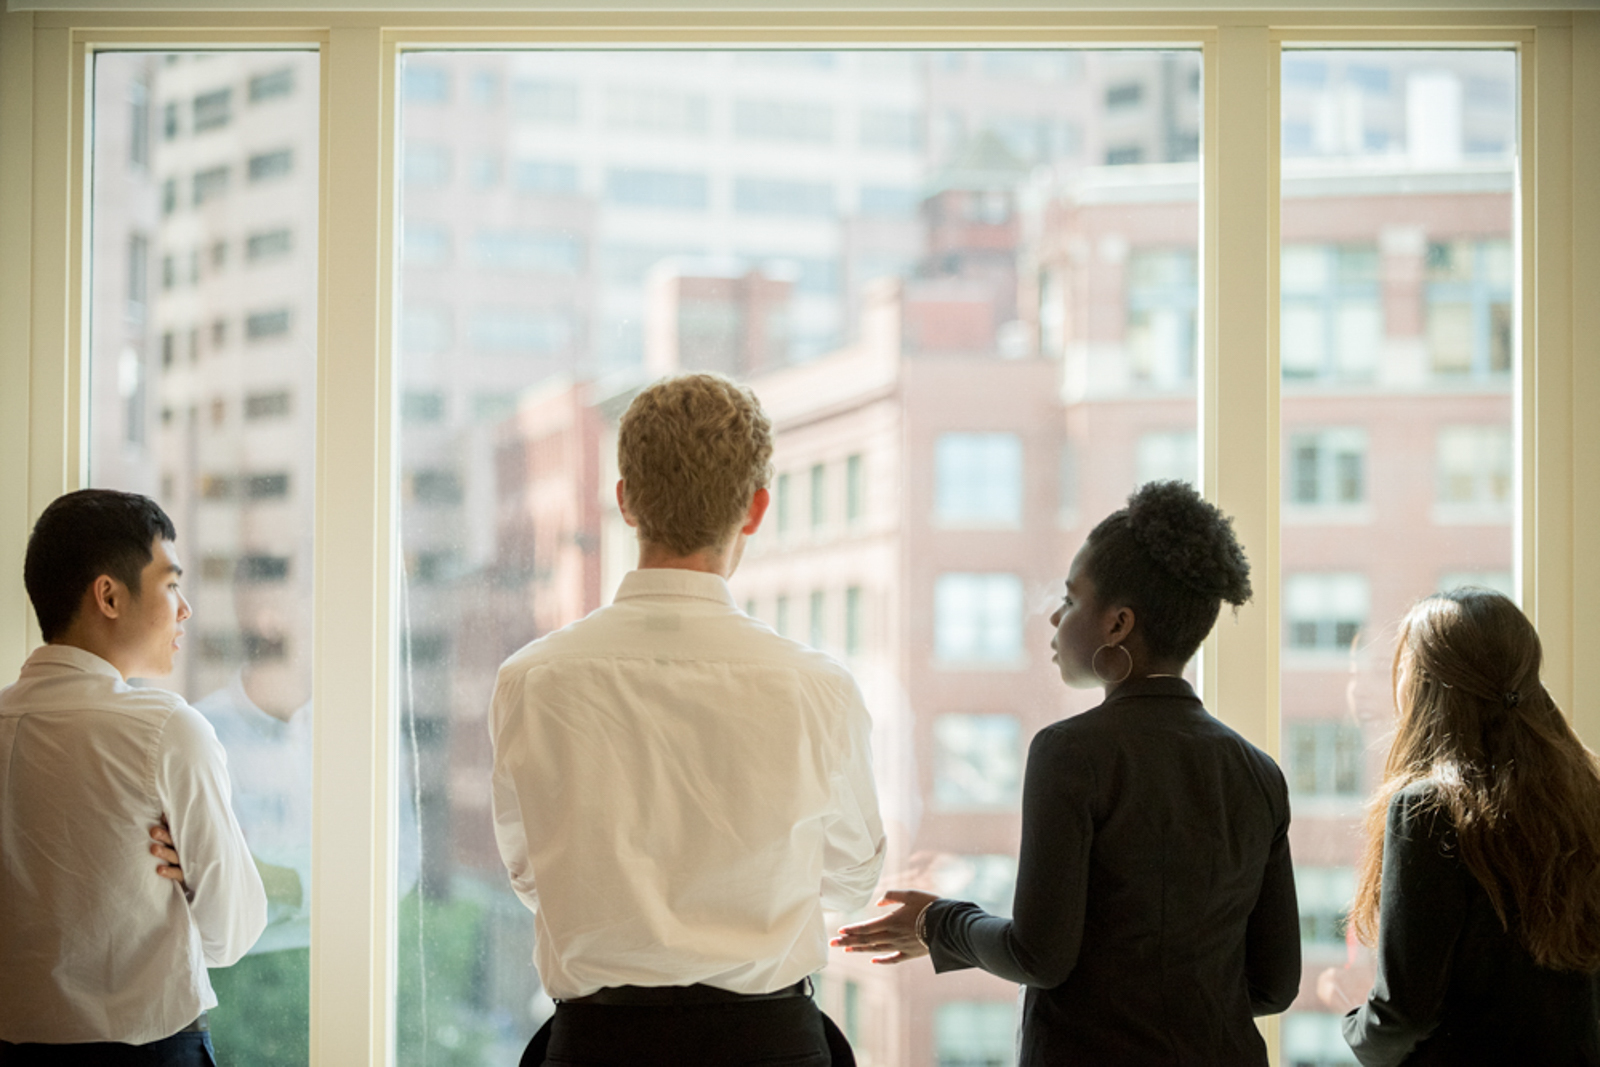 Image of four young people in a business setting, looking outside a window